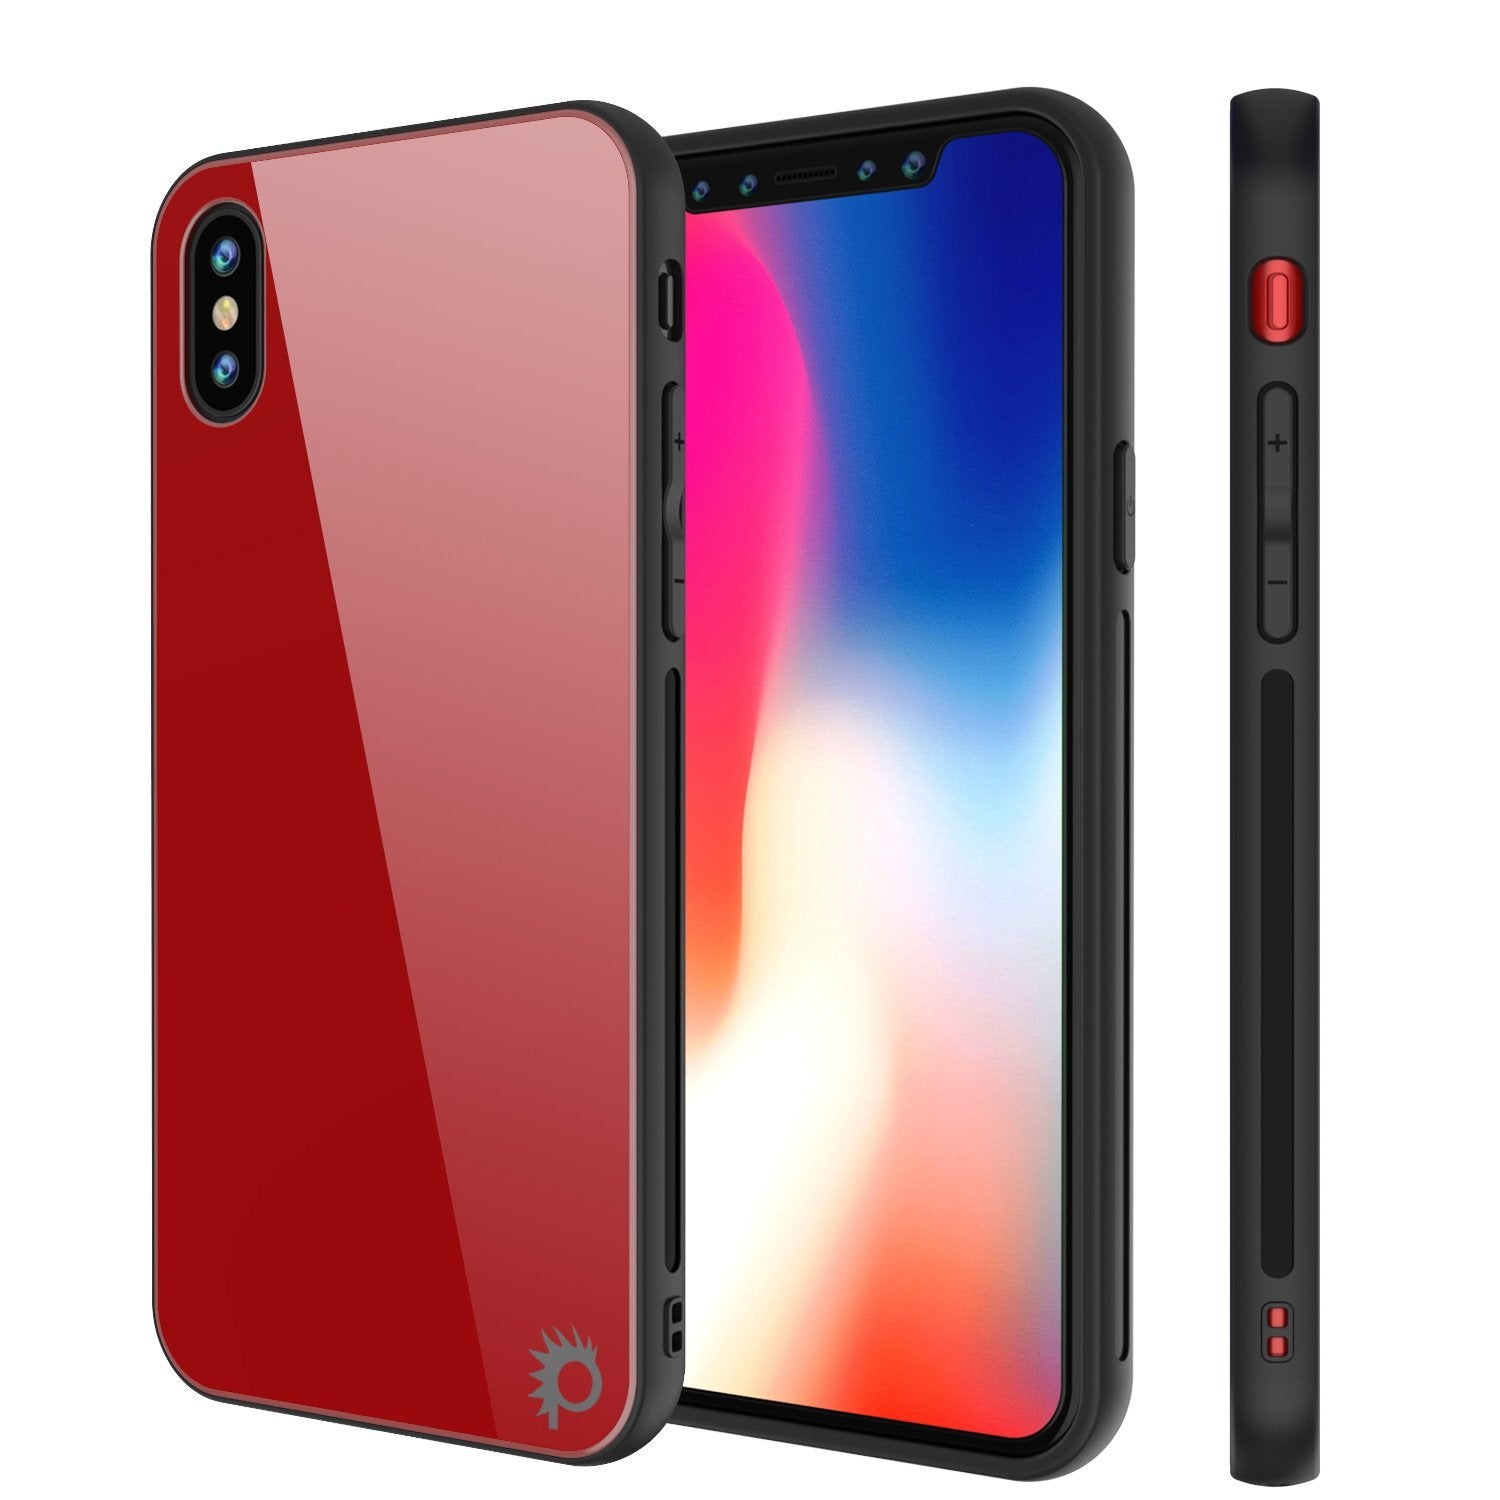 iPhone 8 Case, Punkcase GlassShield Ultra Thin Protective 9H Full Body Tempered Glass Cover W/ Drop Protection & Non Slip Grip for Apple iPhone 7 / Apple iPhone 8 (Red)